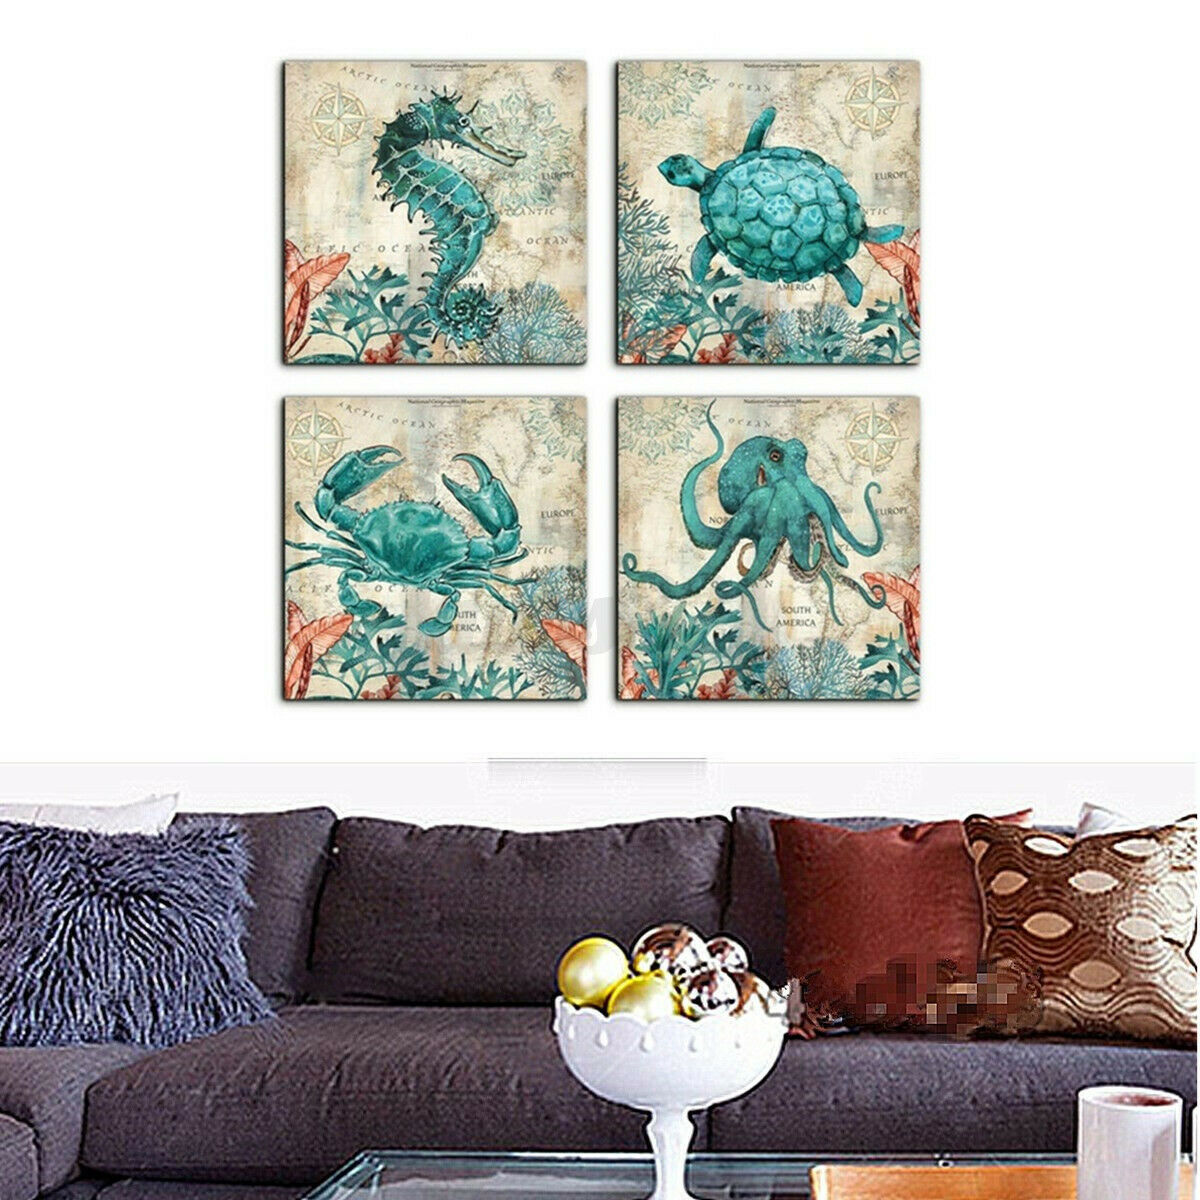 4PCS Sea Canvas Painting Ocean Picture Turtle Horse Wall Art Home Poster Decor